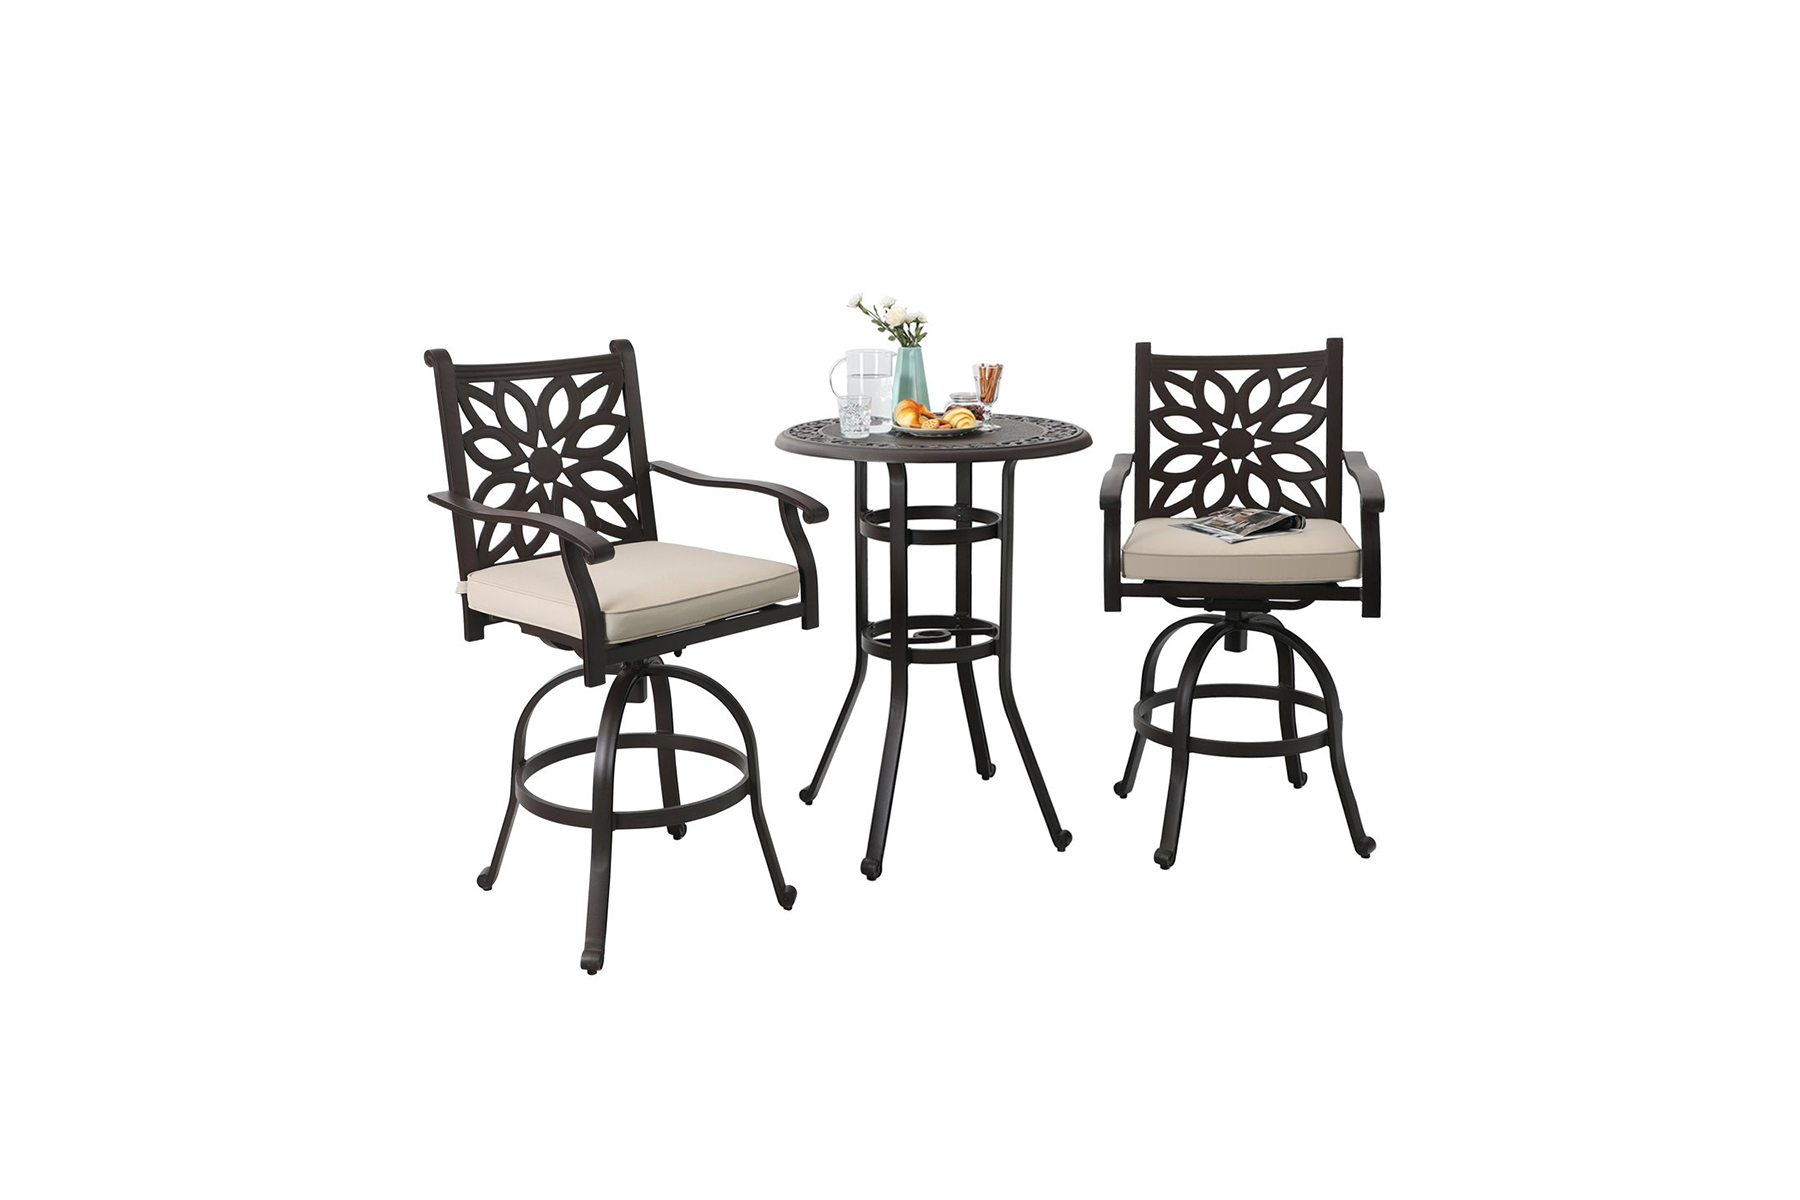 The Best Places To Buy Outdoor Furniture Online Real Simple